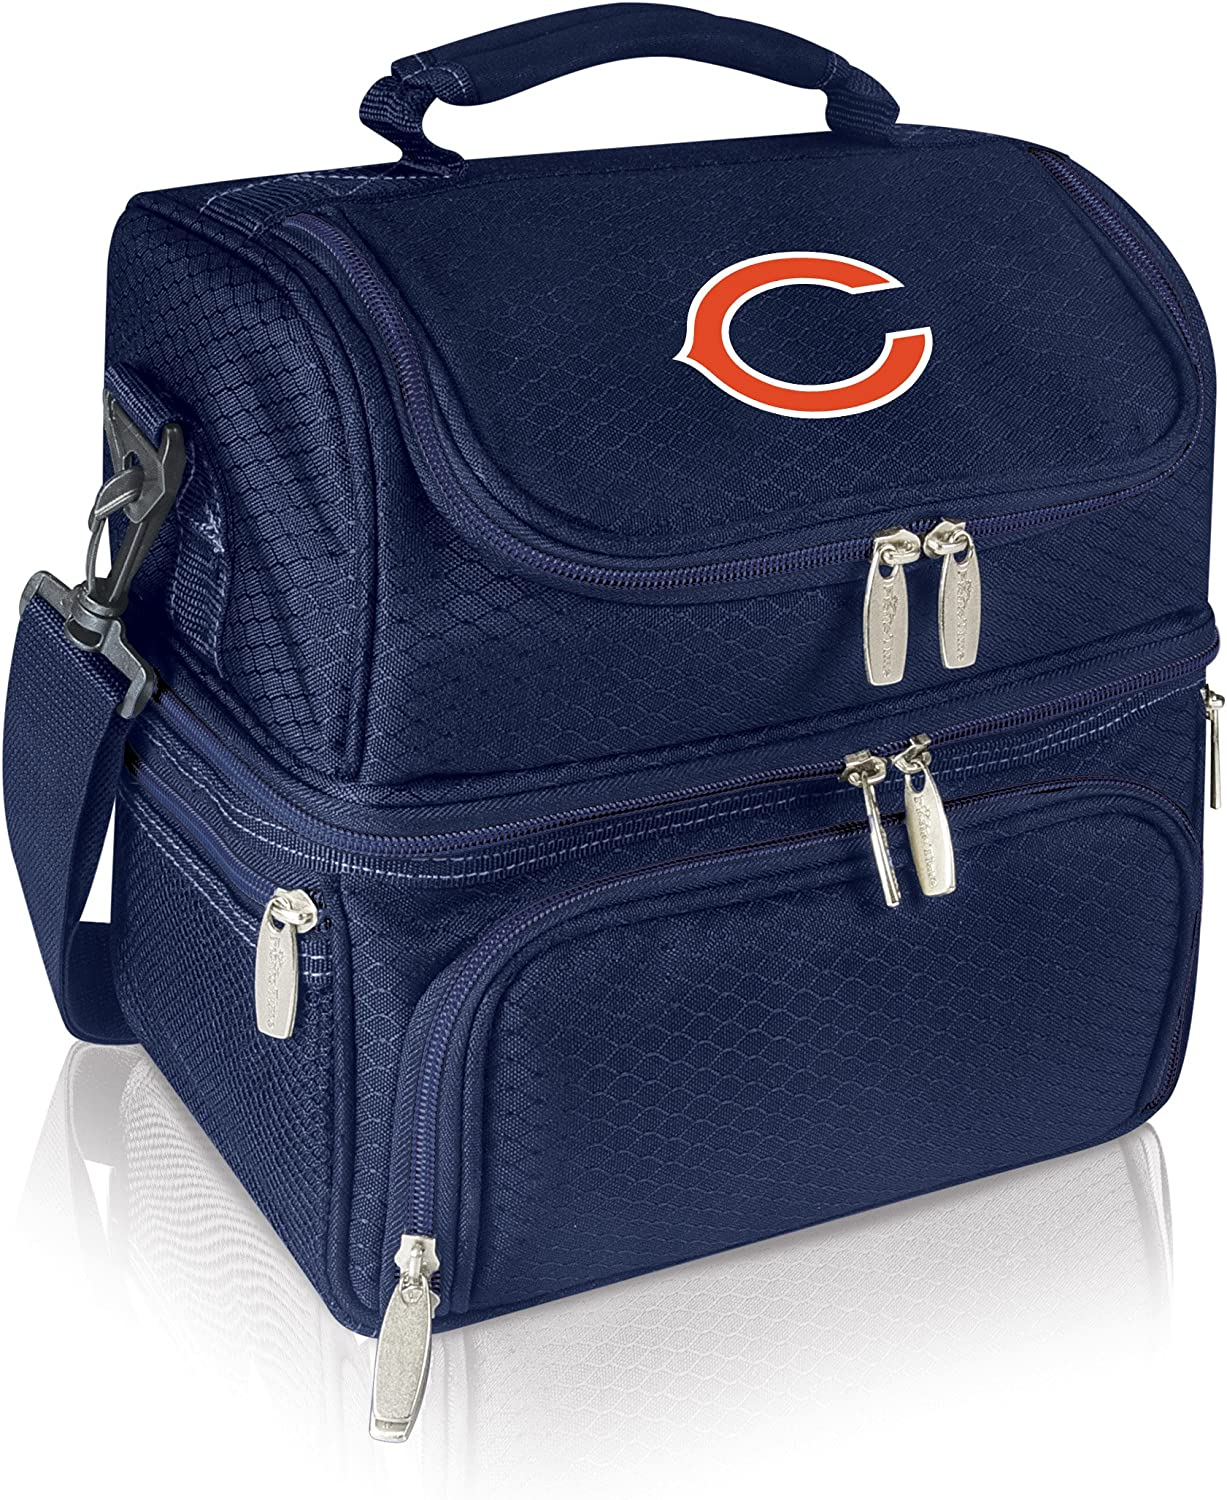 PICNIC TIME NFL Chicago Bears Pranzo Insulated Lunch Tote with Service for One, Navy